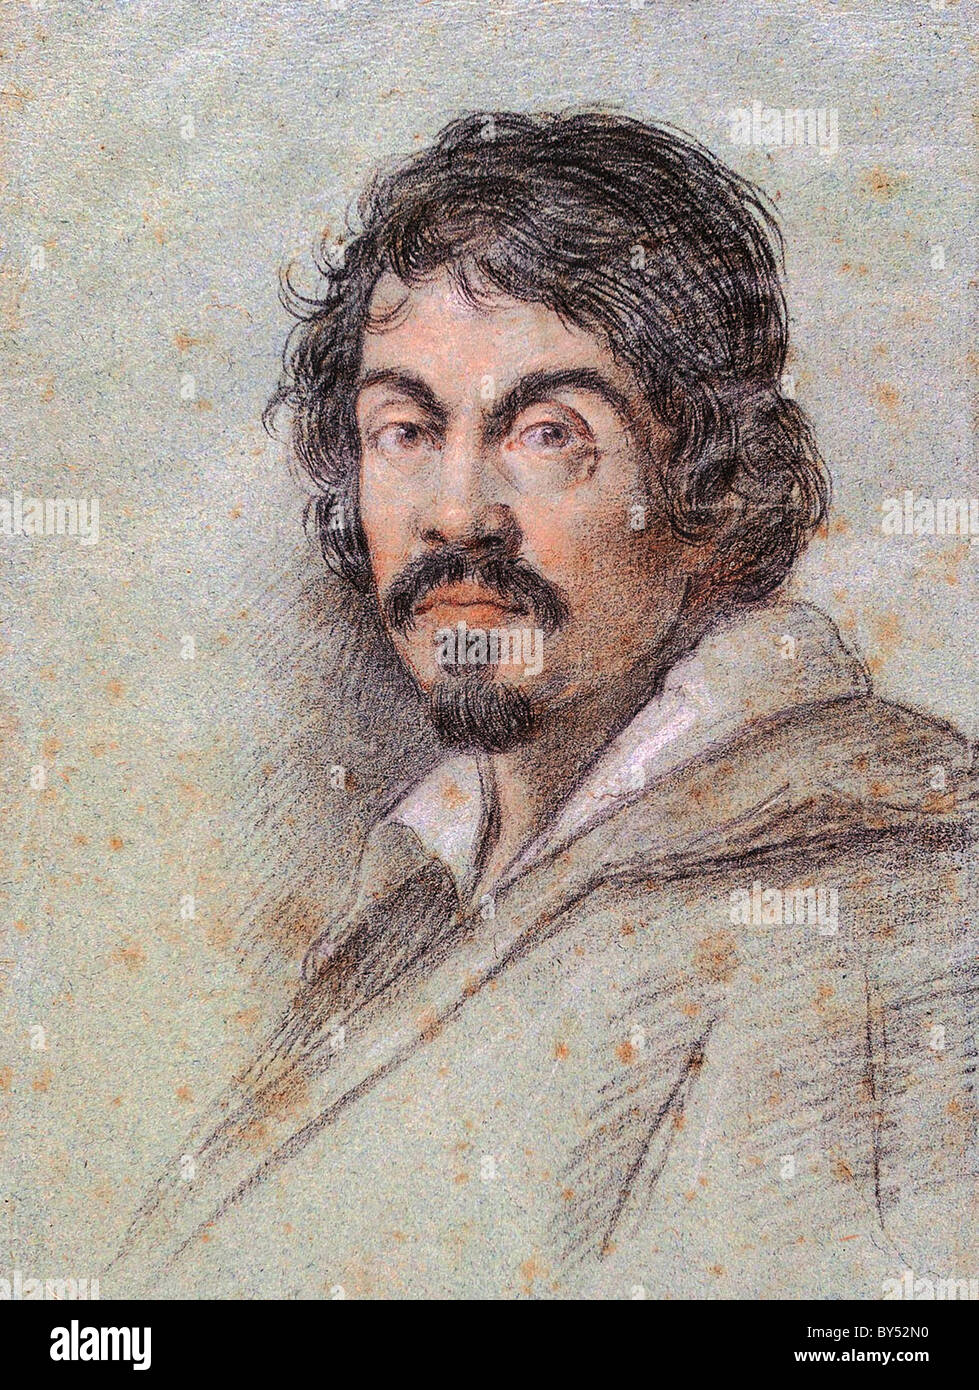 Caravaggio, Michelangelo Merisi da Caravaggio (29 September 1571 – 18 July 1610) was an Italian artist. - Stock Image